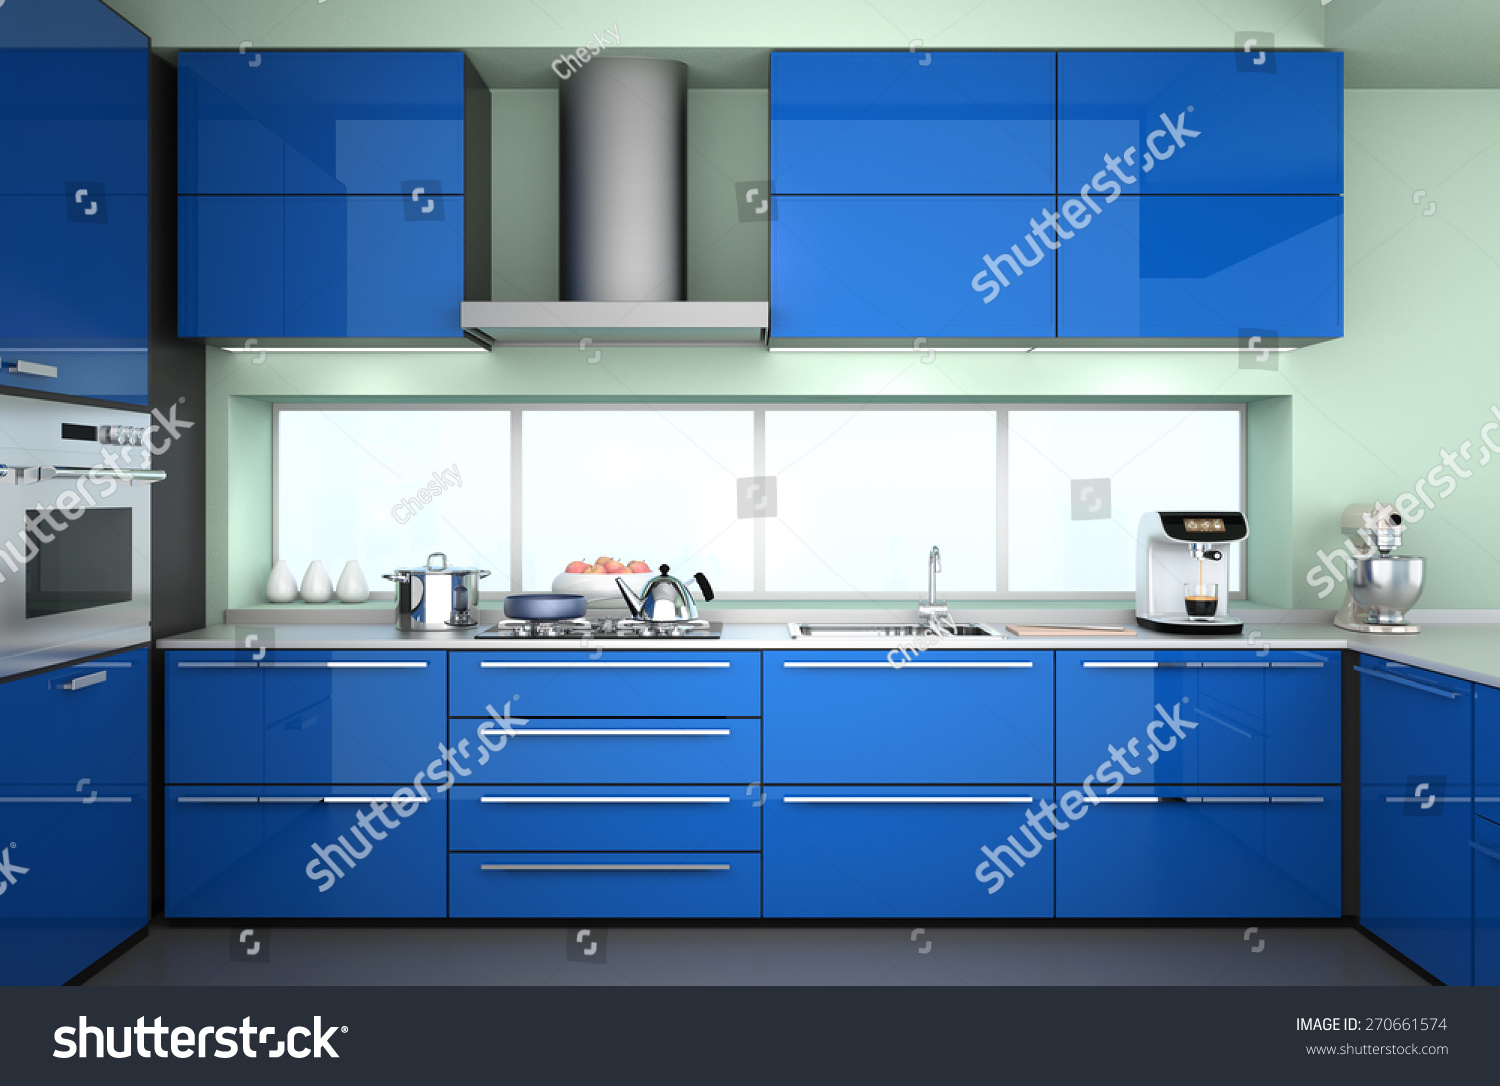 modern kitchen interior blue color theme stock illustration modern kitchen interior in blue color theme 3d rendering image